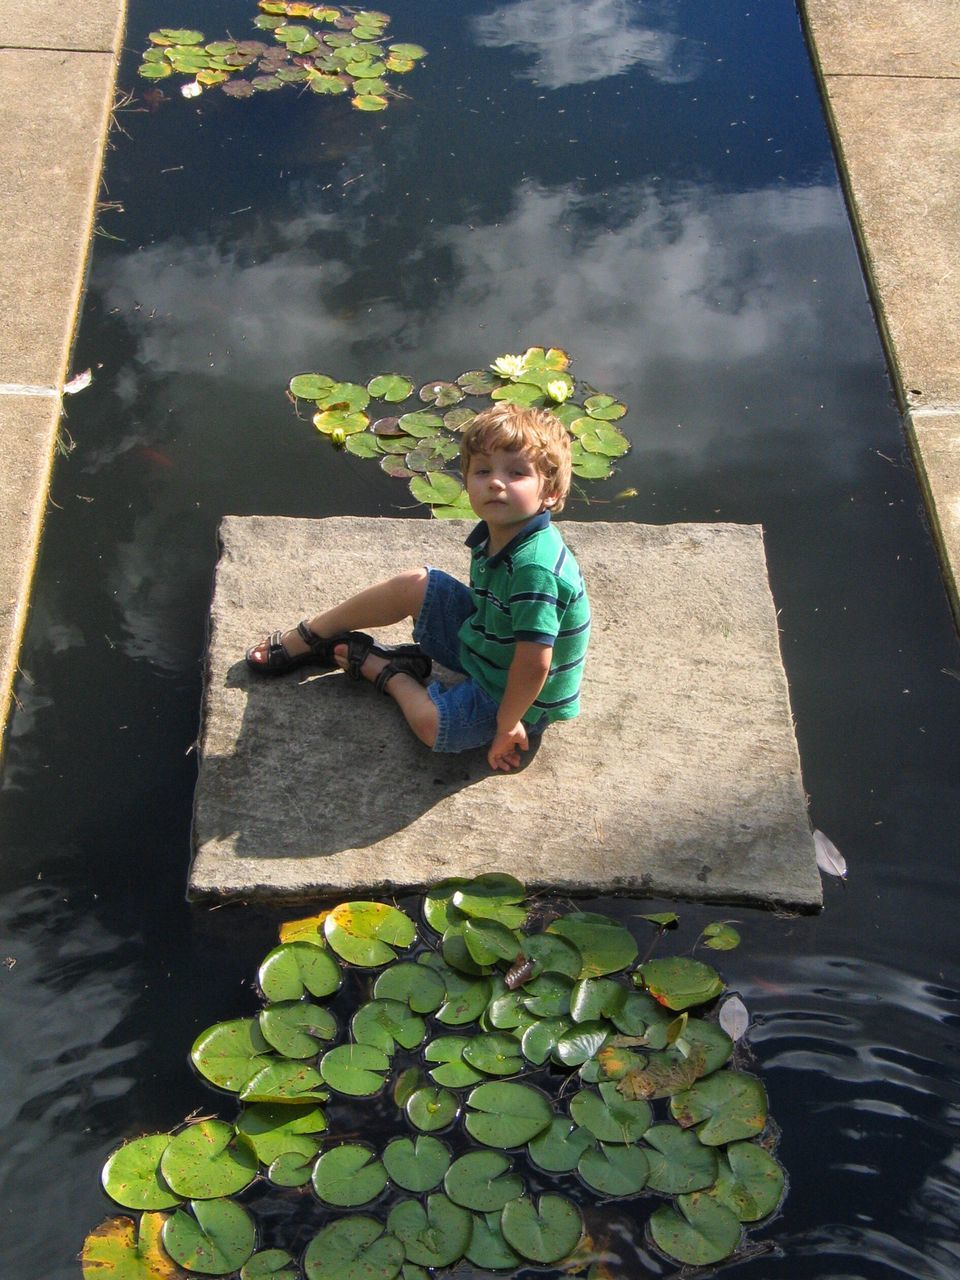 Portrait Of Boy Sitting On Rock By Lily Pads In Pond At Park